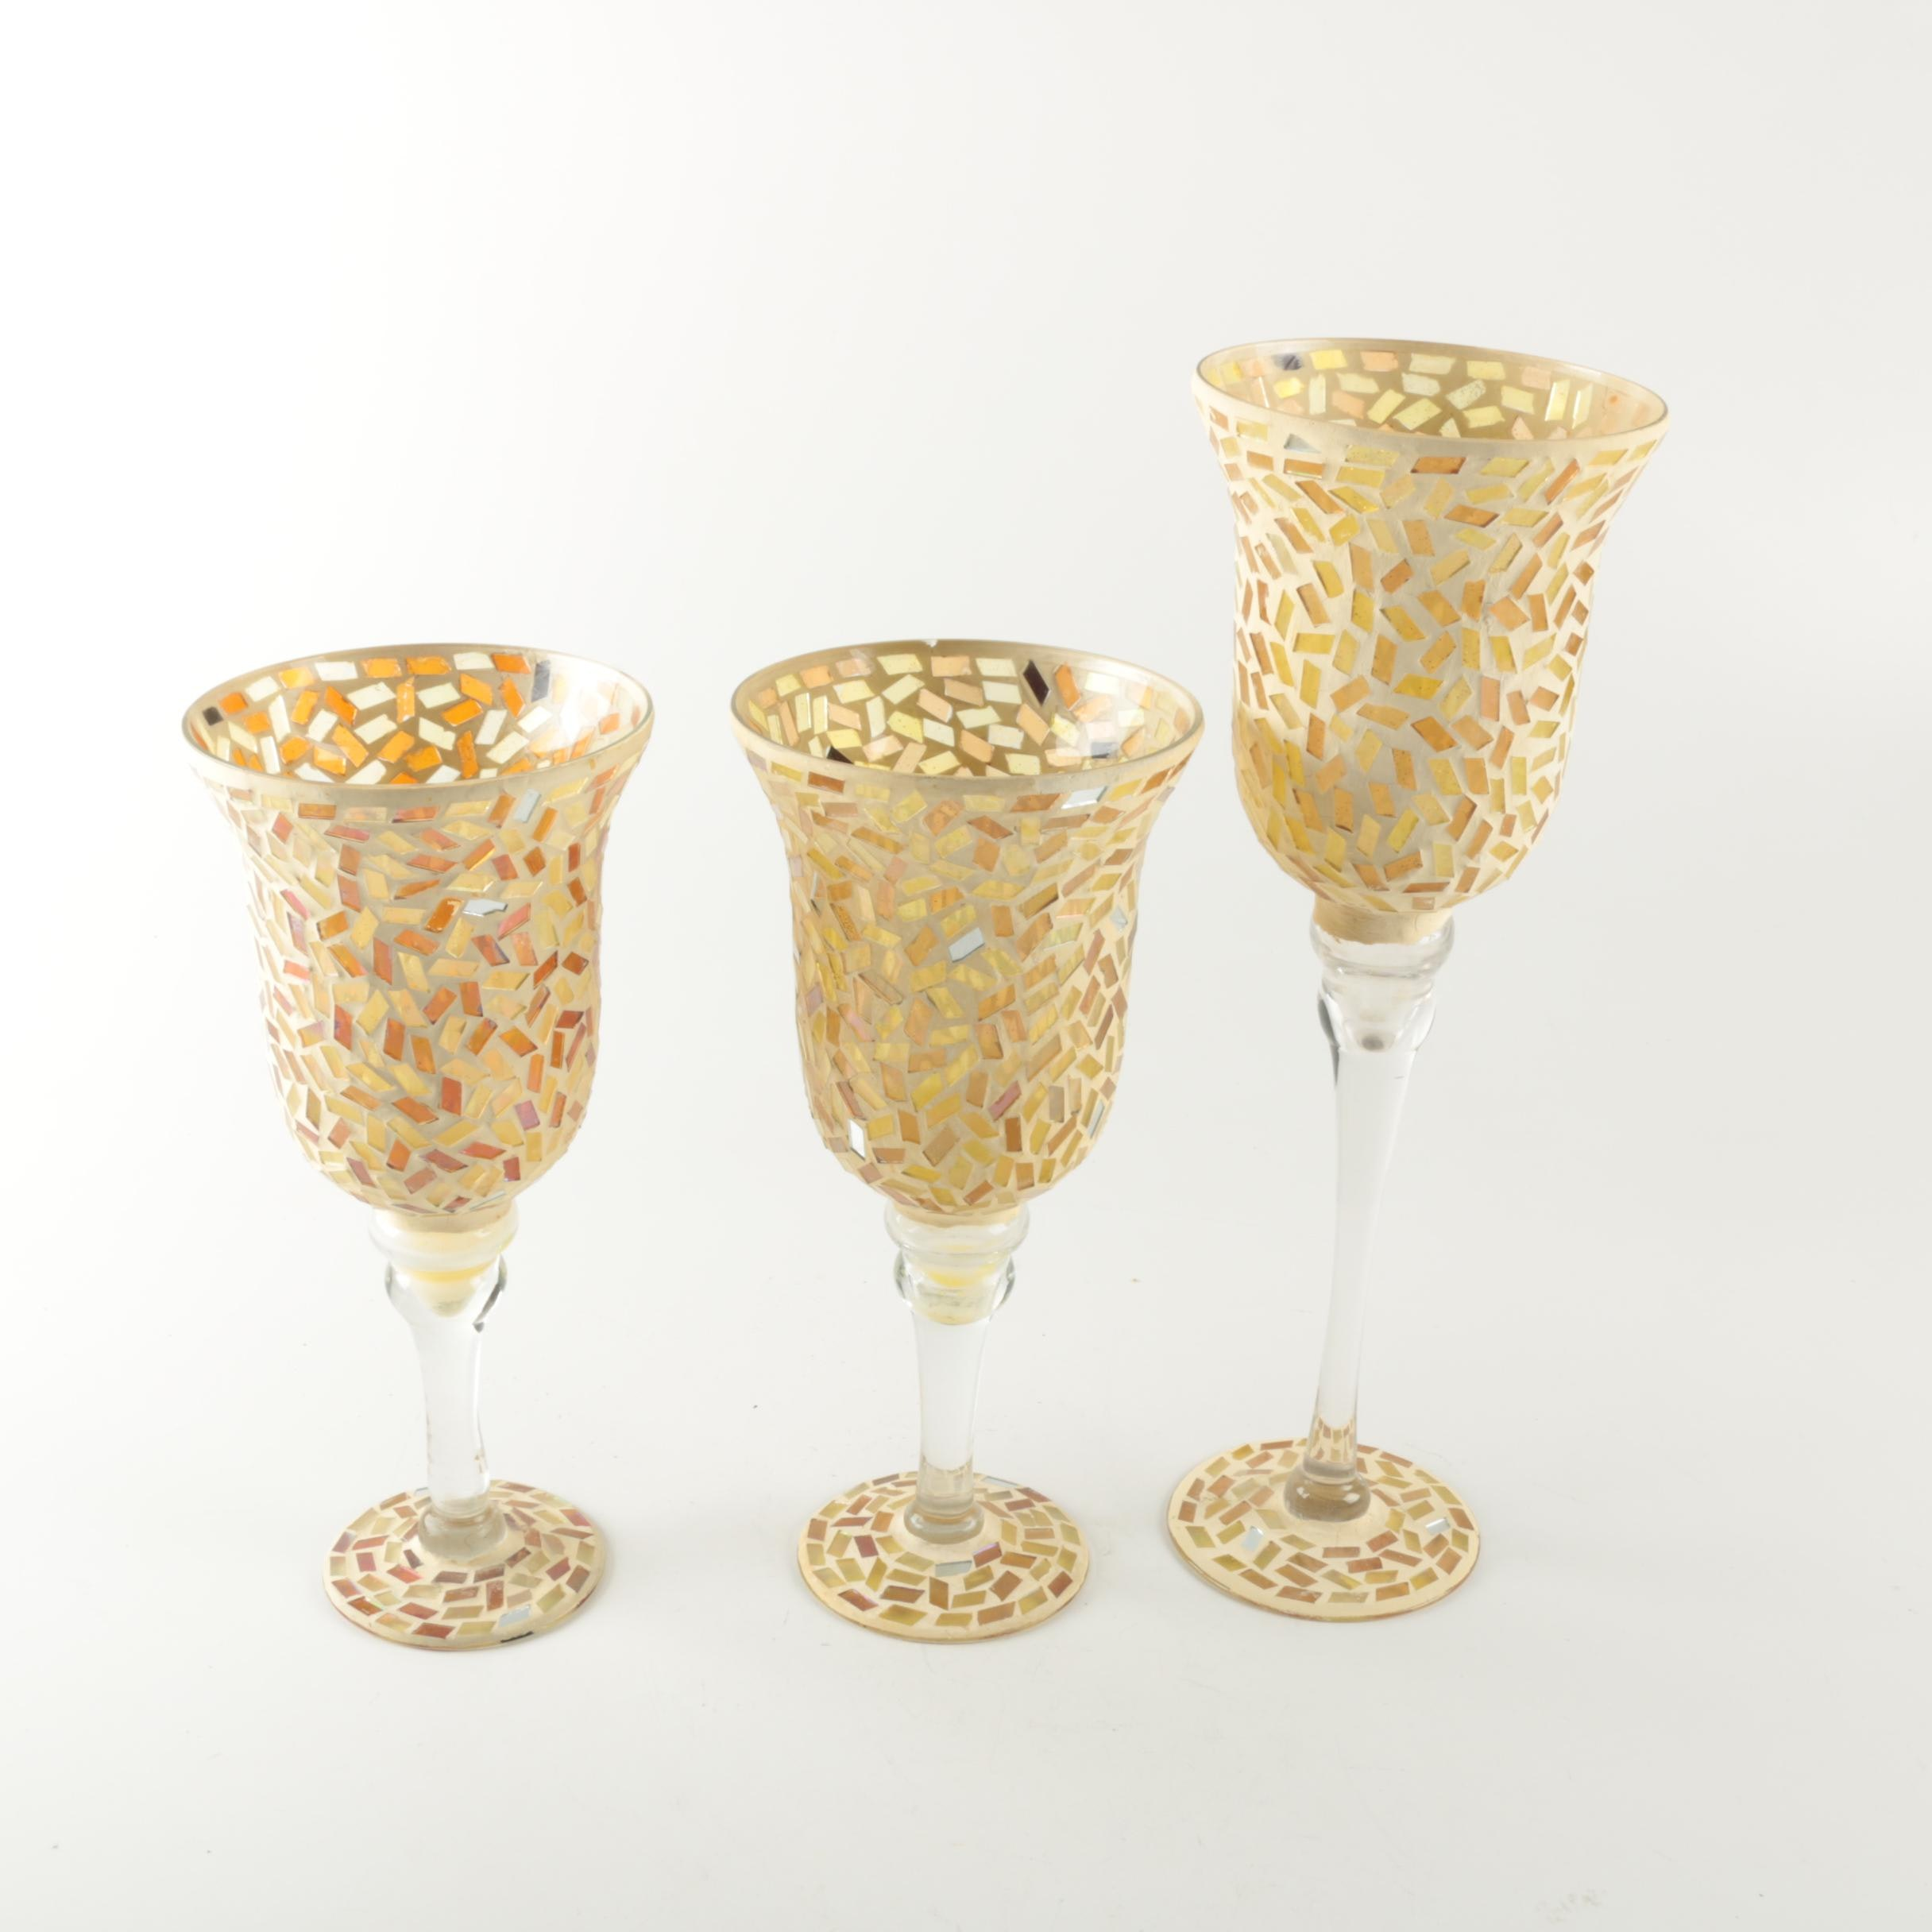 Set of Mosaic Glass Candle Holders